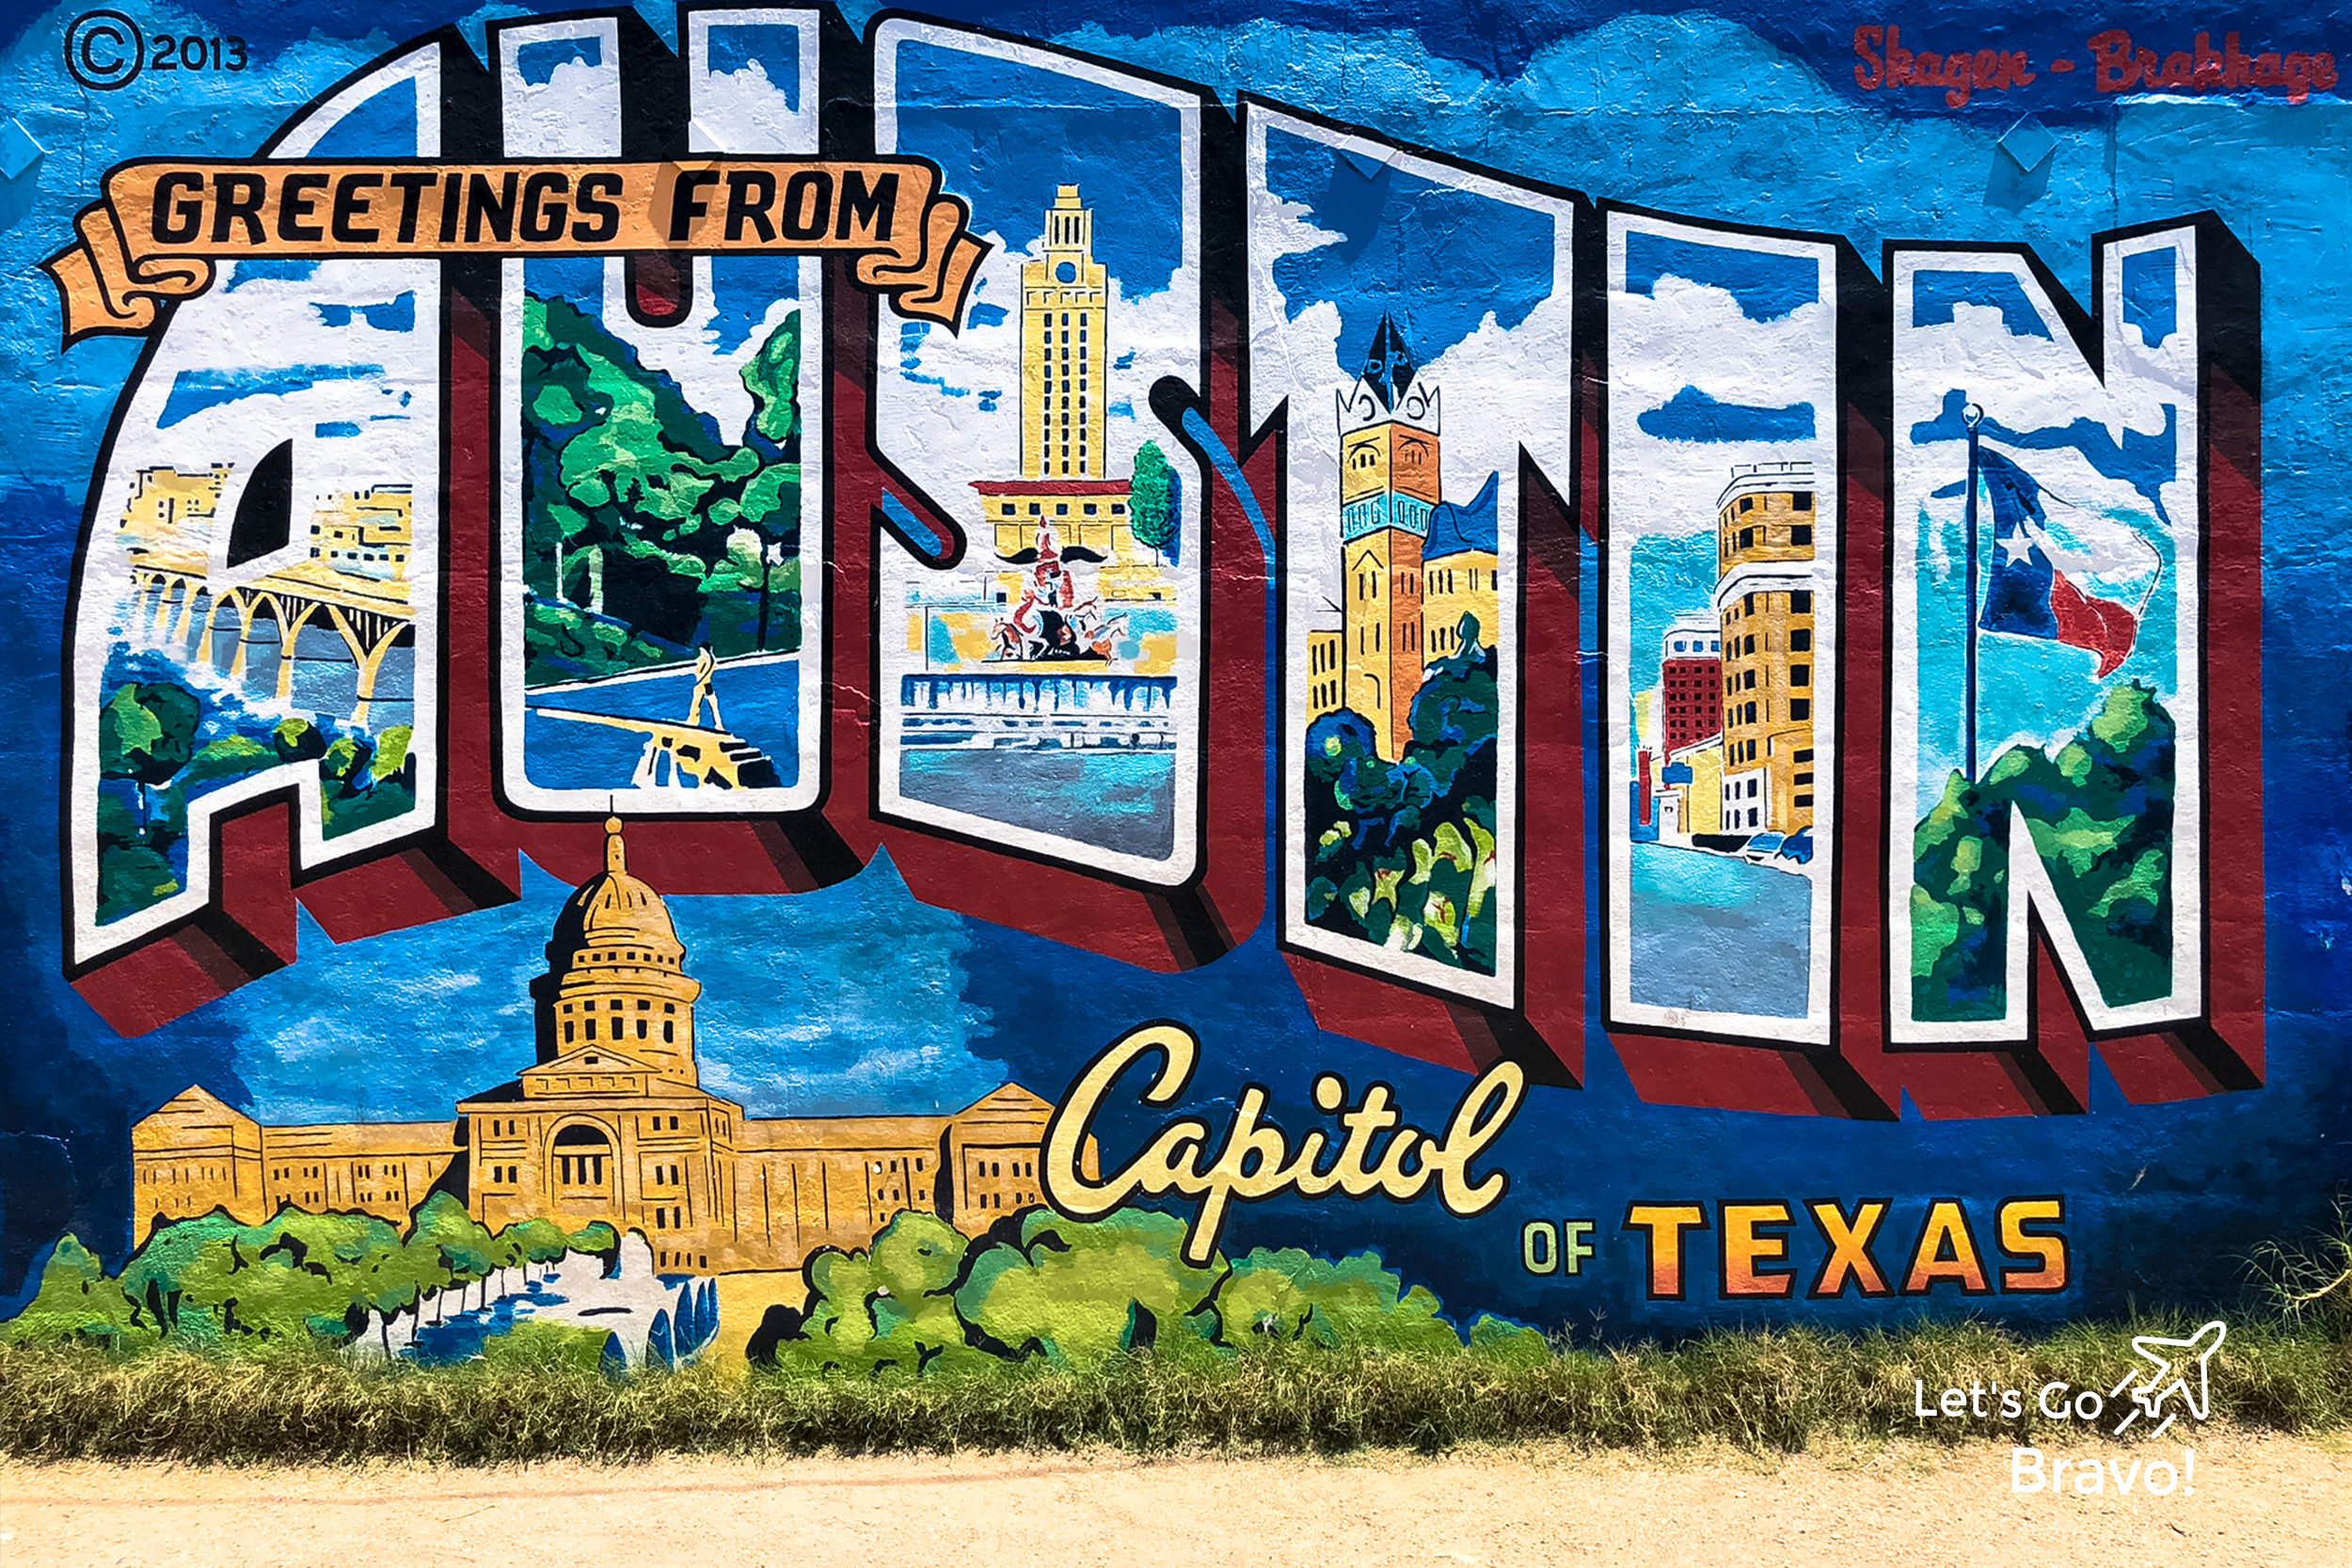 Austin Travel Guide - Let's Go Bravo - Eric Bravo Photography - Greetings From Austin Mural